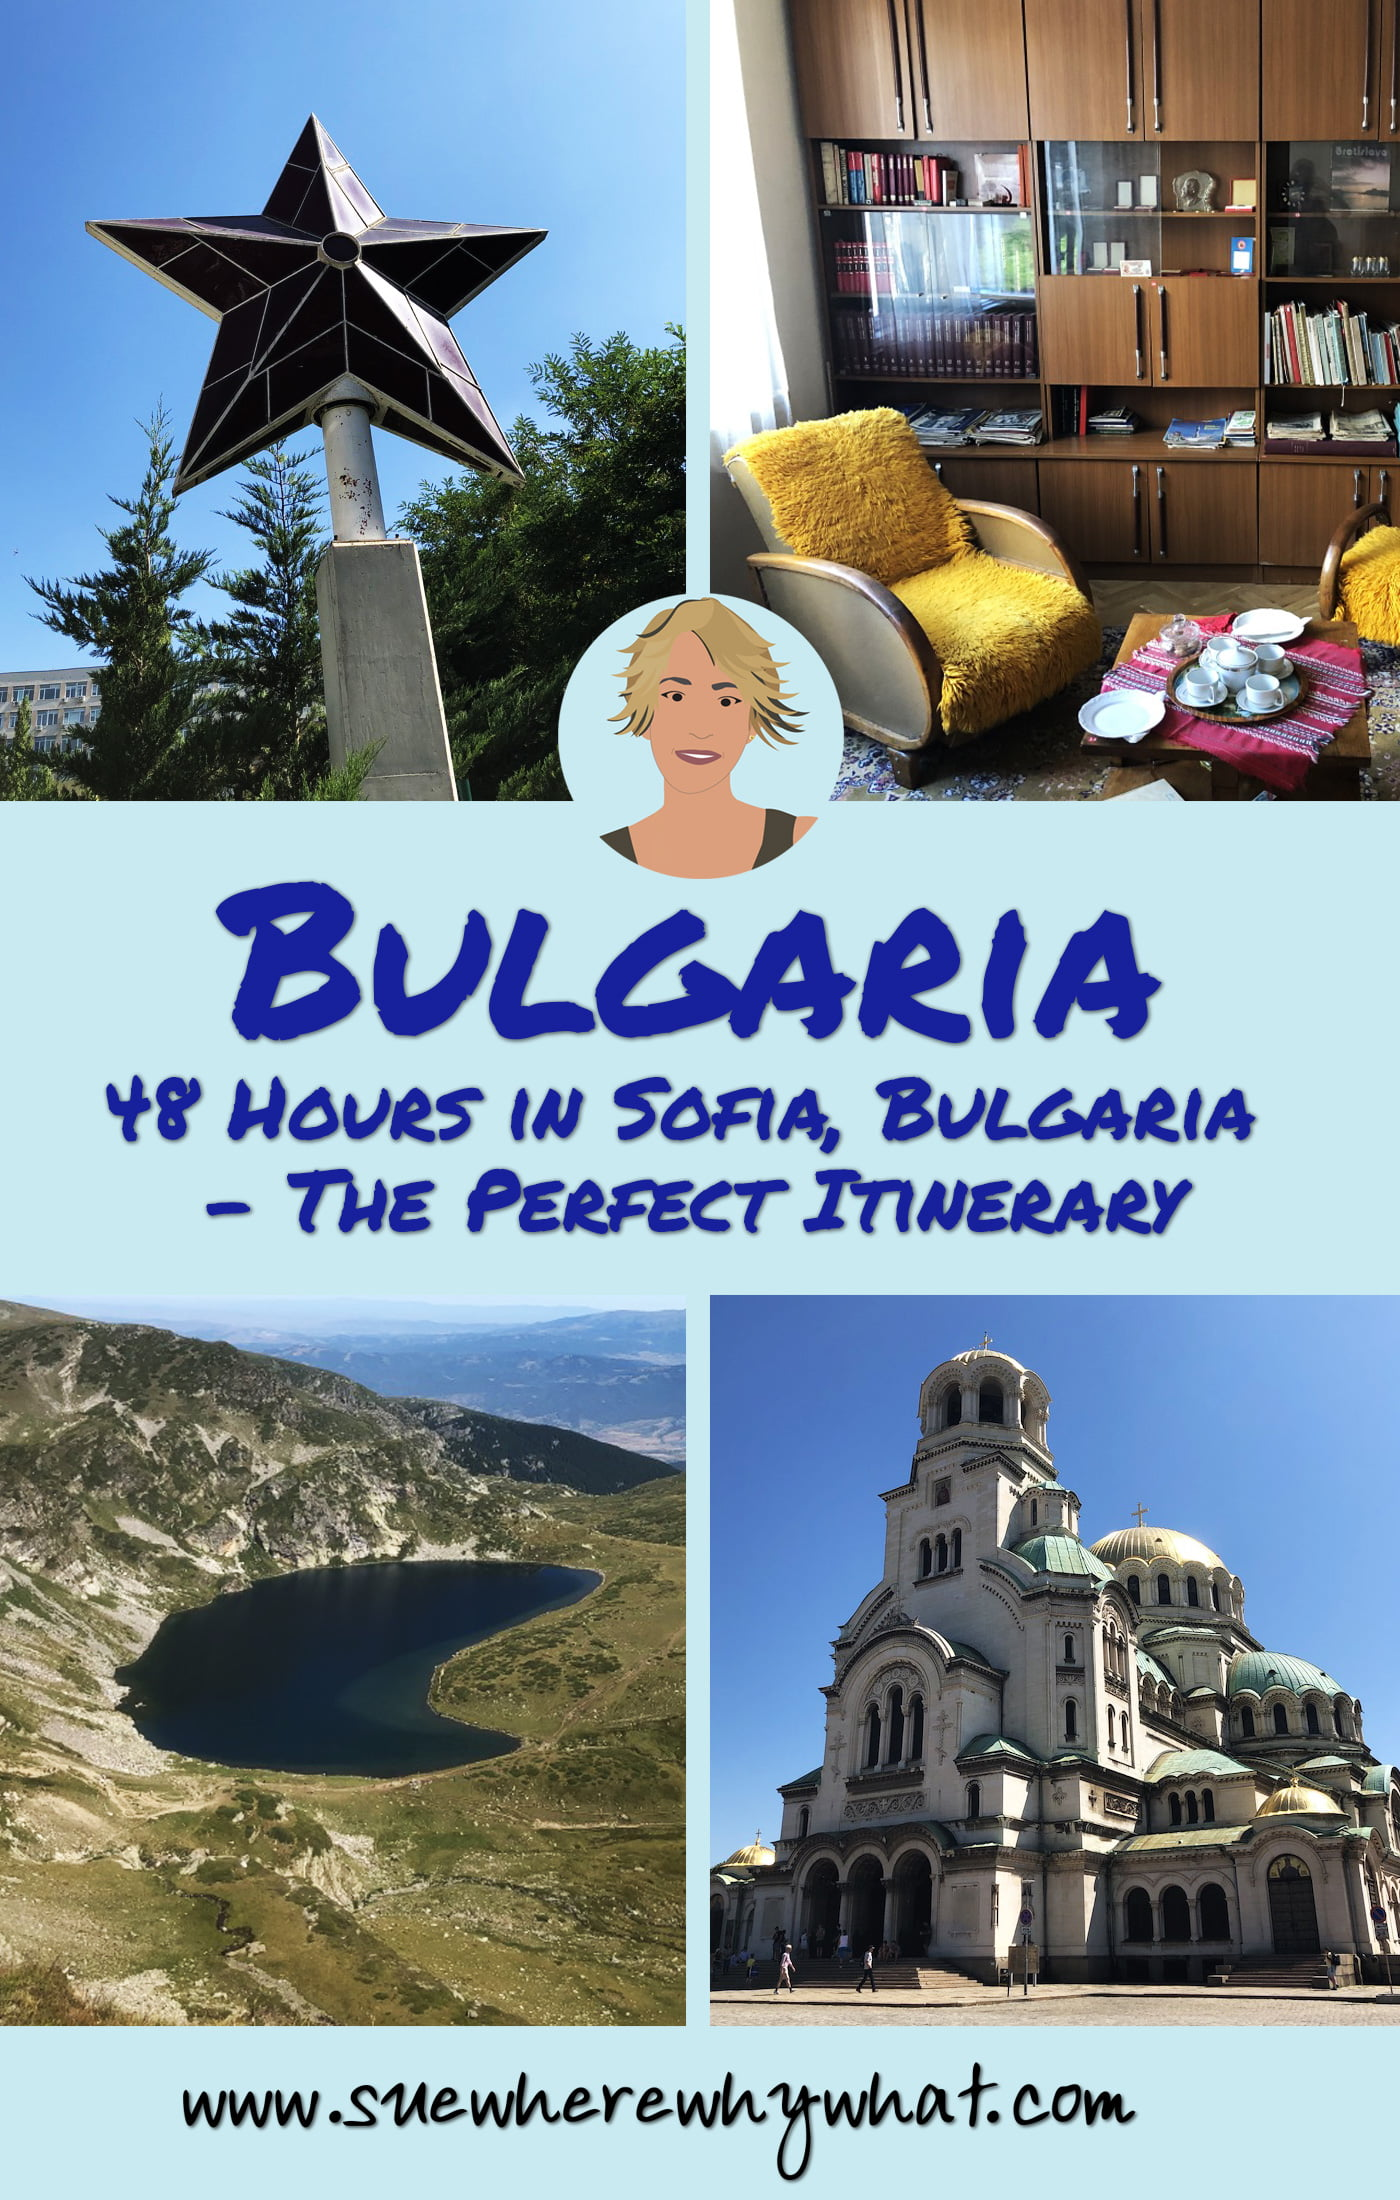 48 Hours in Sofia, Bulgaria. A perfect itinerary for a short trip to this fascinating city. This itinerary gives you a flavour of all the main sights of Sofia, an understanding of the complex history of the country, a taste of its communist past & an opportunity to get out of the city to discover the beautiful area of Rila.